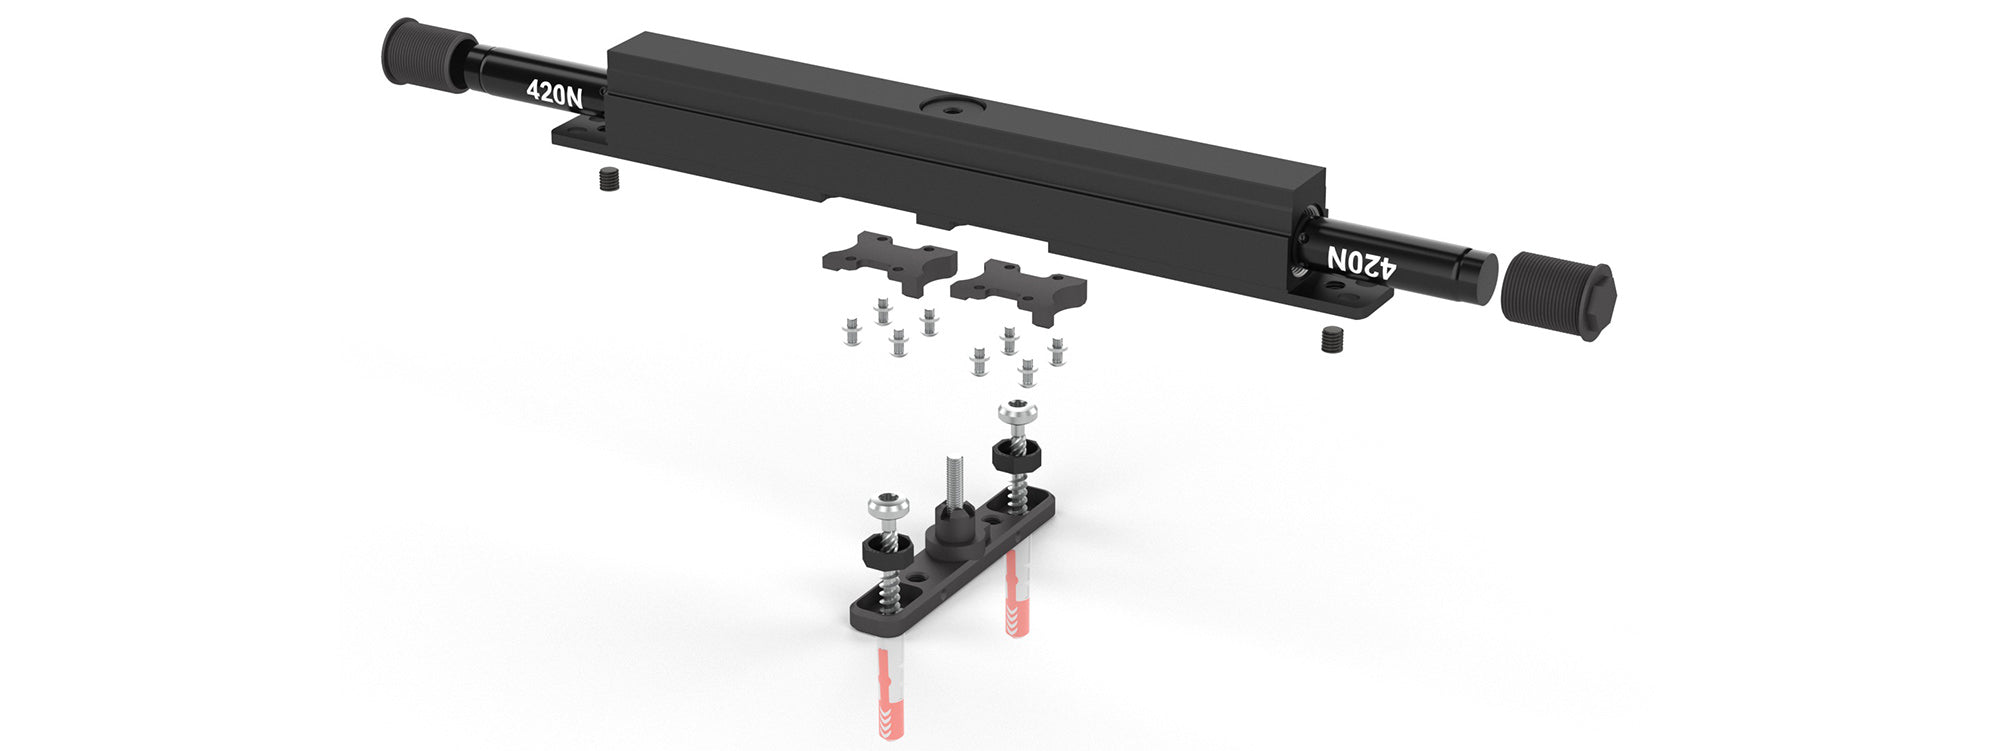 Stealthpivot XL exploded view